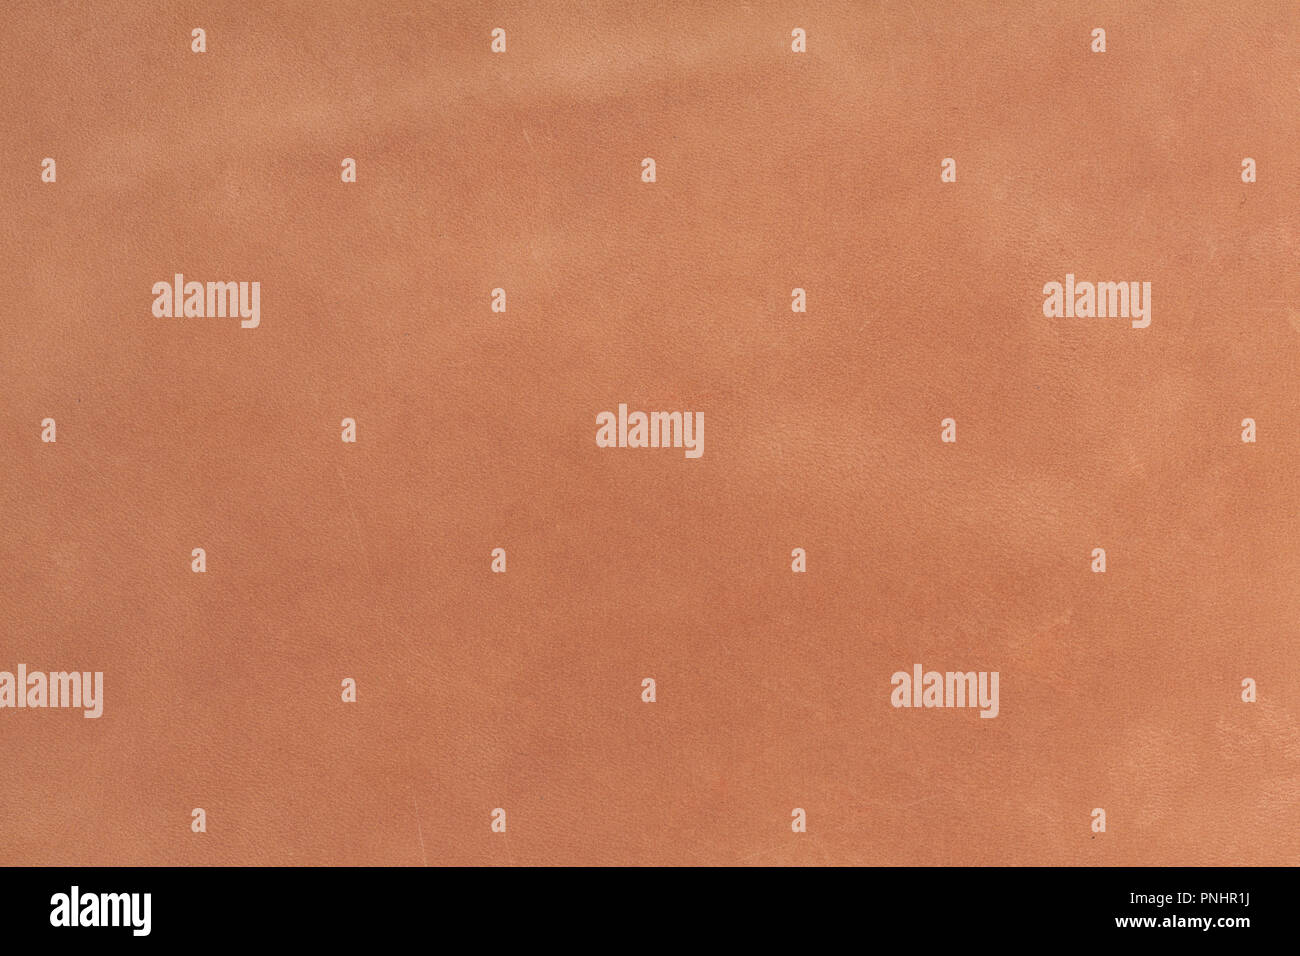 Brown grunge scratched leather to use as background. - Stock Image